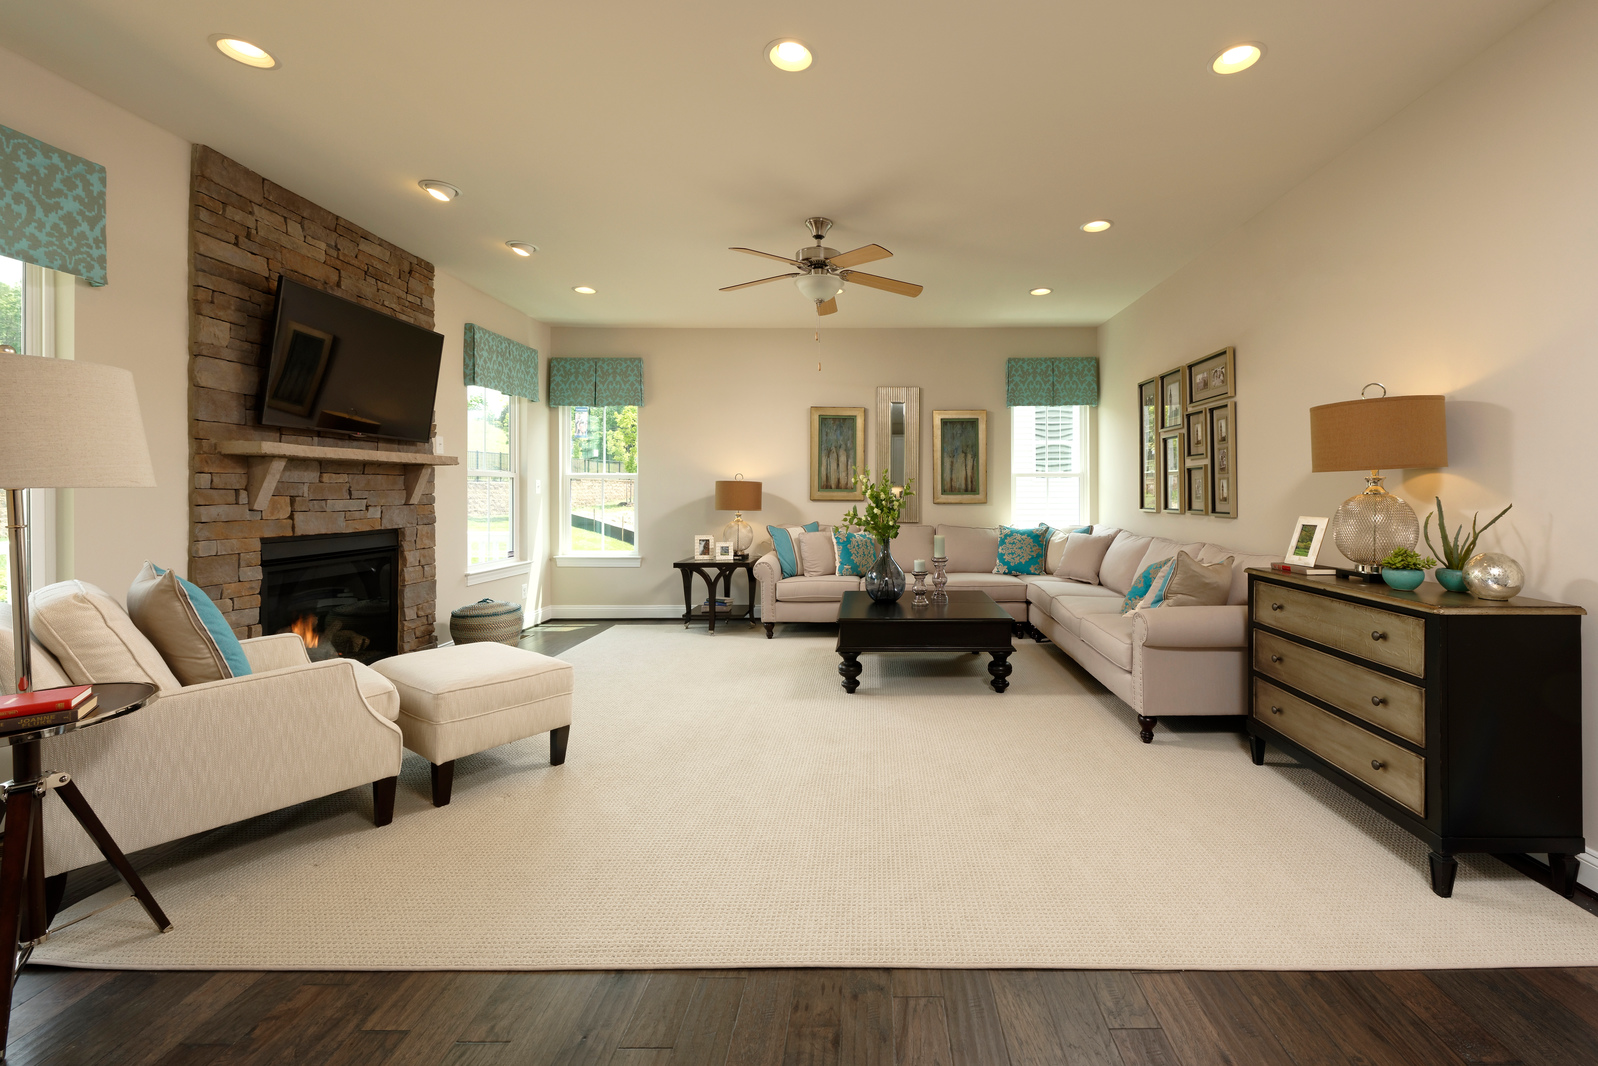 New foxchapel home model for sale at potomac shores single for Virtual garage designer